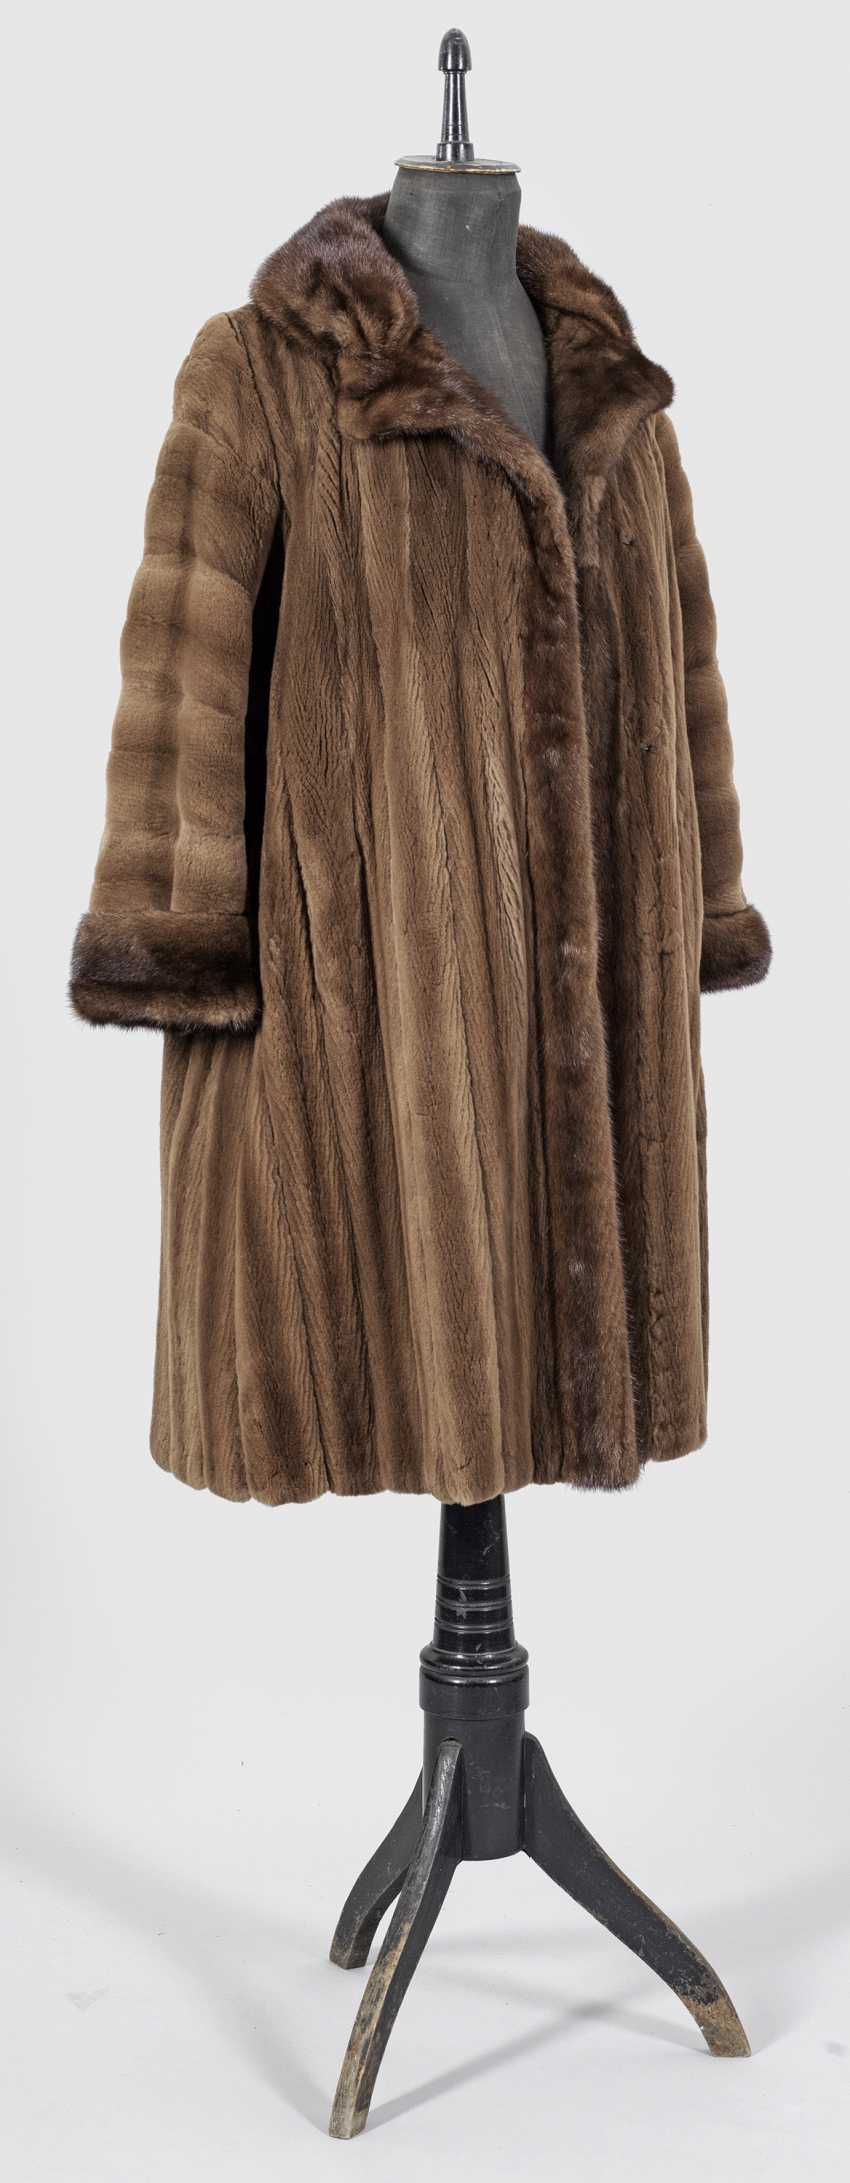 Elegant mink coat from Bischoff - photo 1